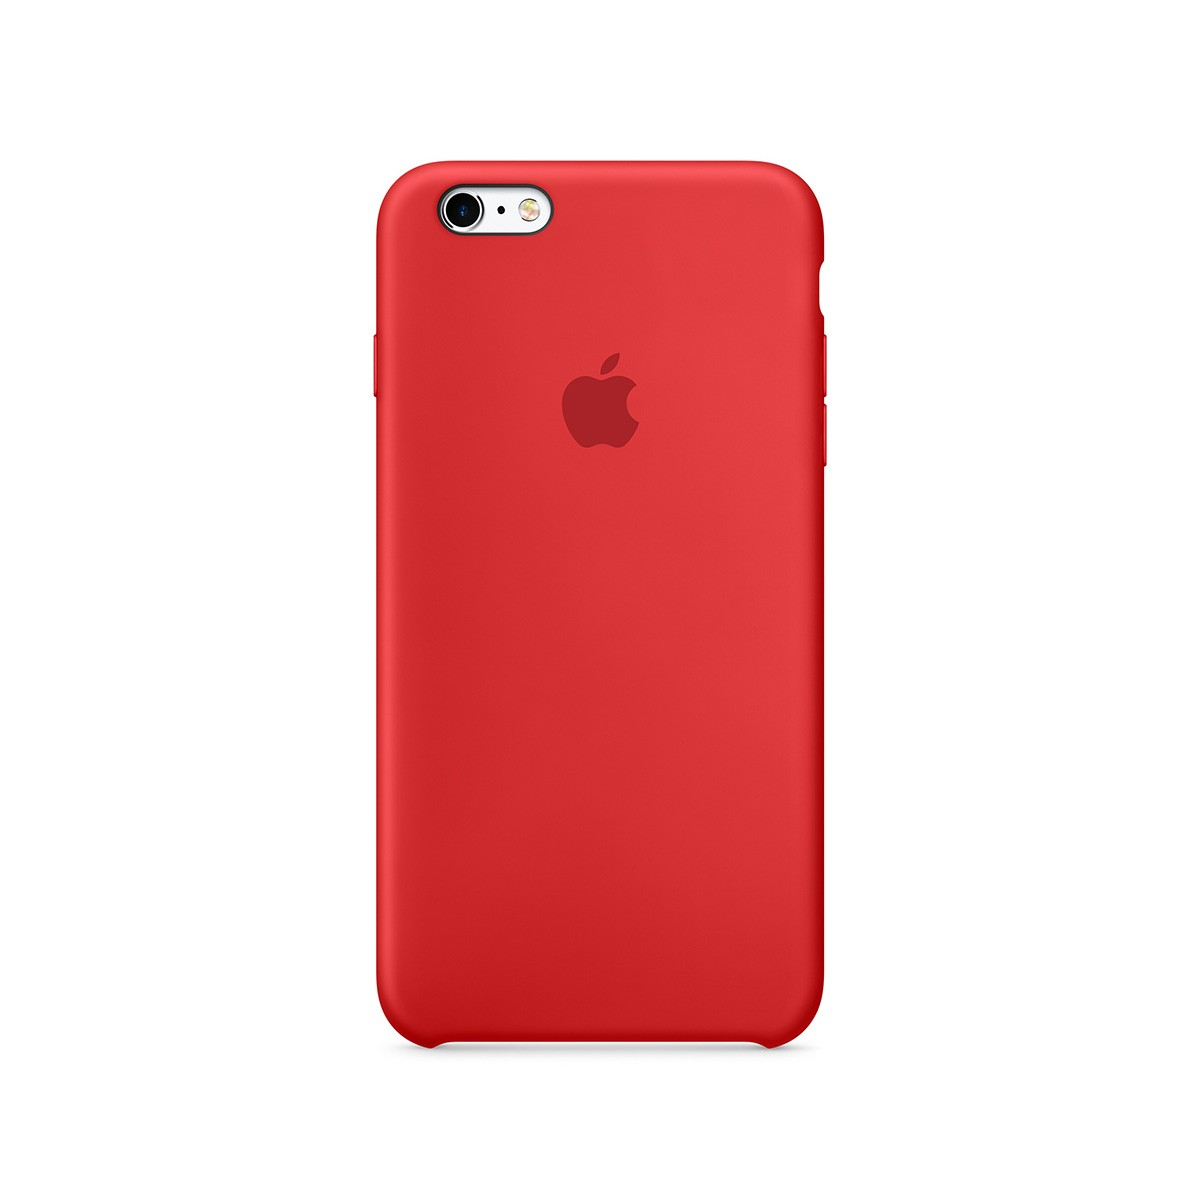 Apple silikonový kryt na iPhone 6s - (PRODUCT)RED